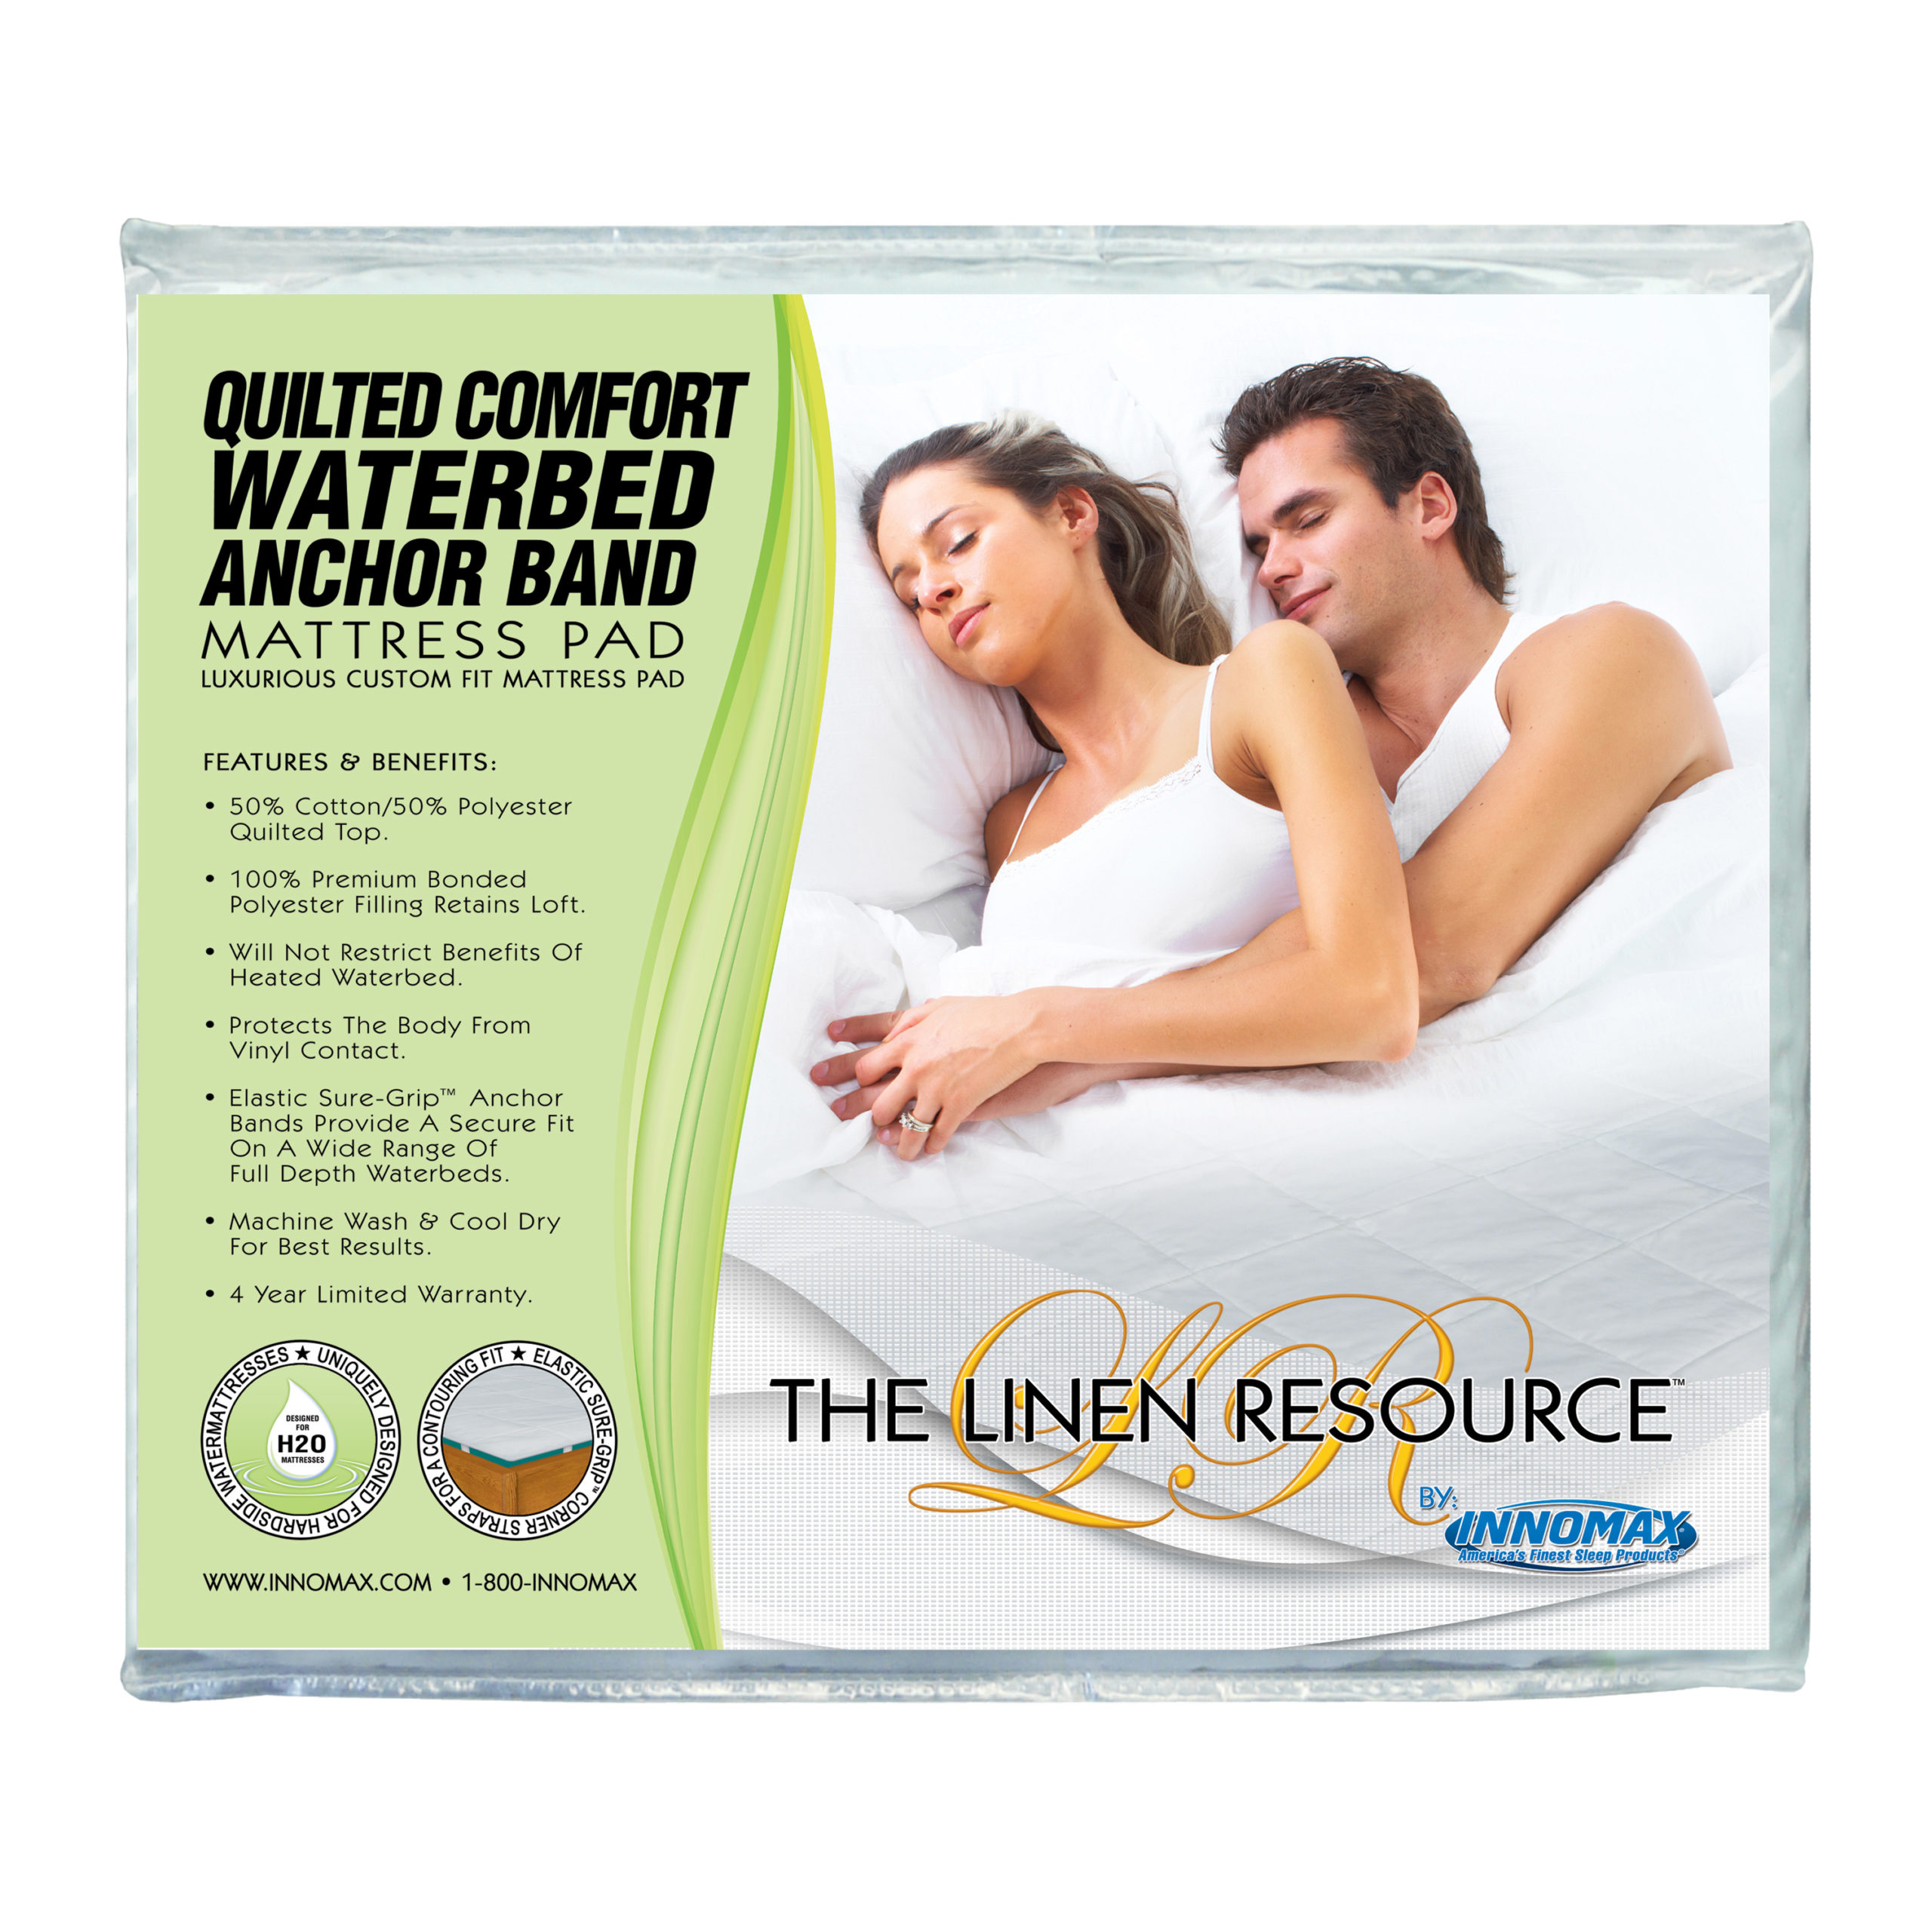 INNOMAX The Linen Resource Quilted Comfort Waterbed Anchor Band Custom Fit Mattress Pad Protective Cover King